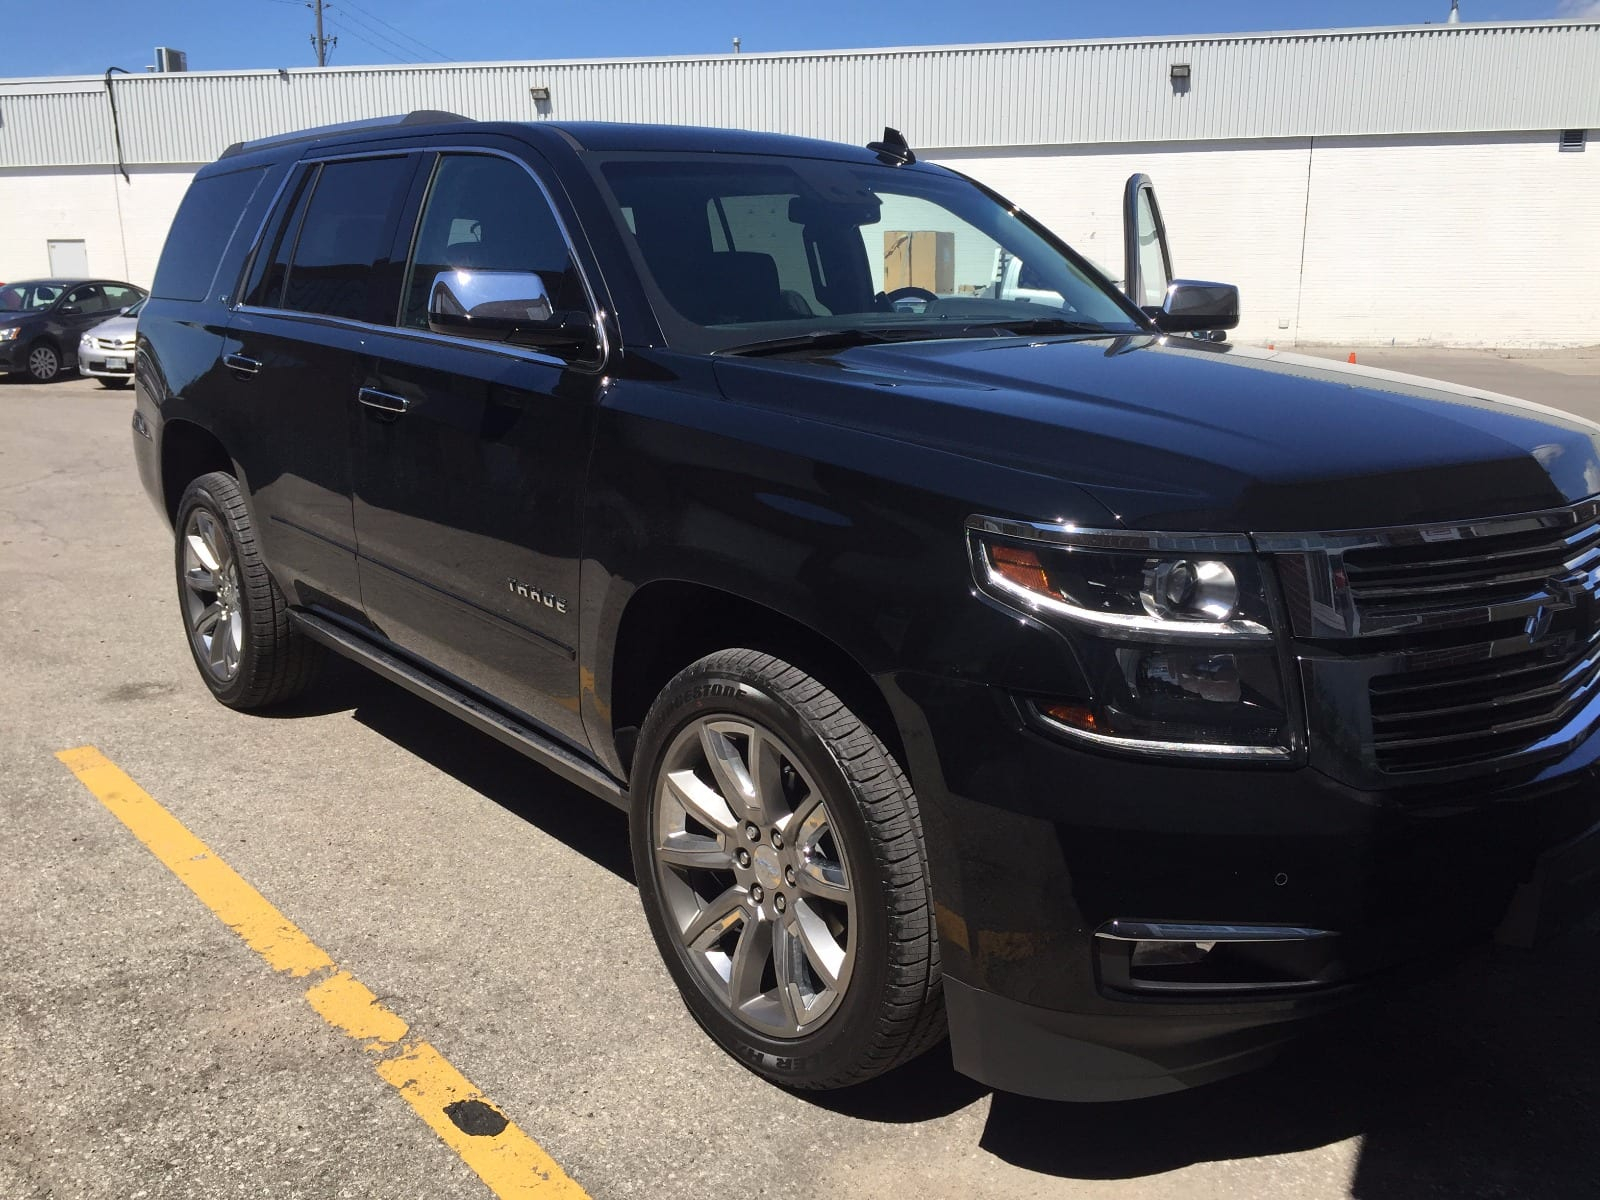 For Sale: New Chevy Tahoe, B6 Armored - Bastion Hls 2022 Chevy Tahoe Cost, Images, Accessories